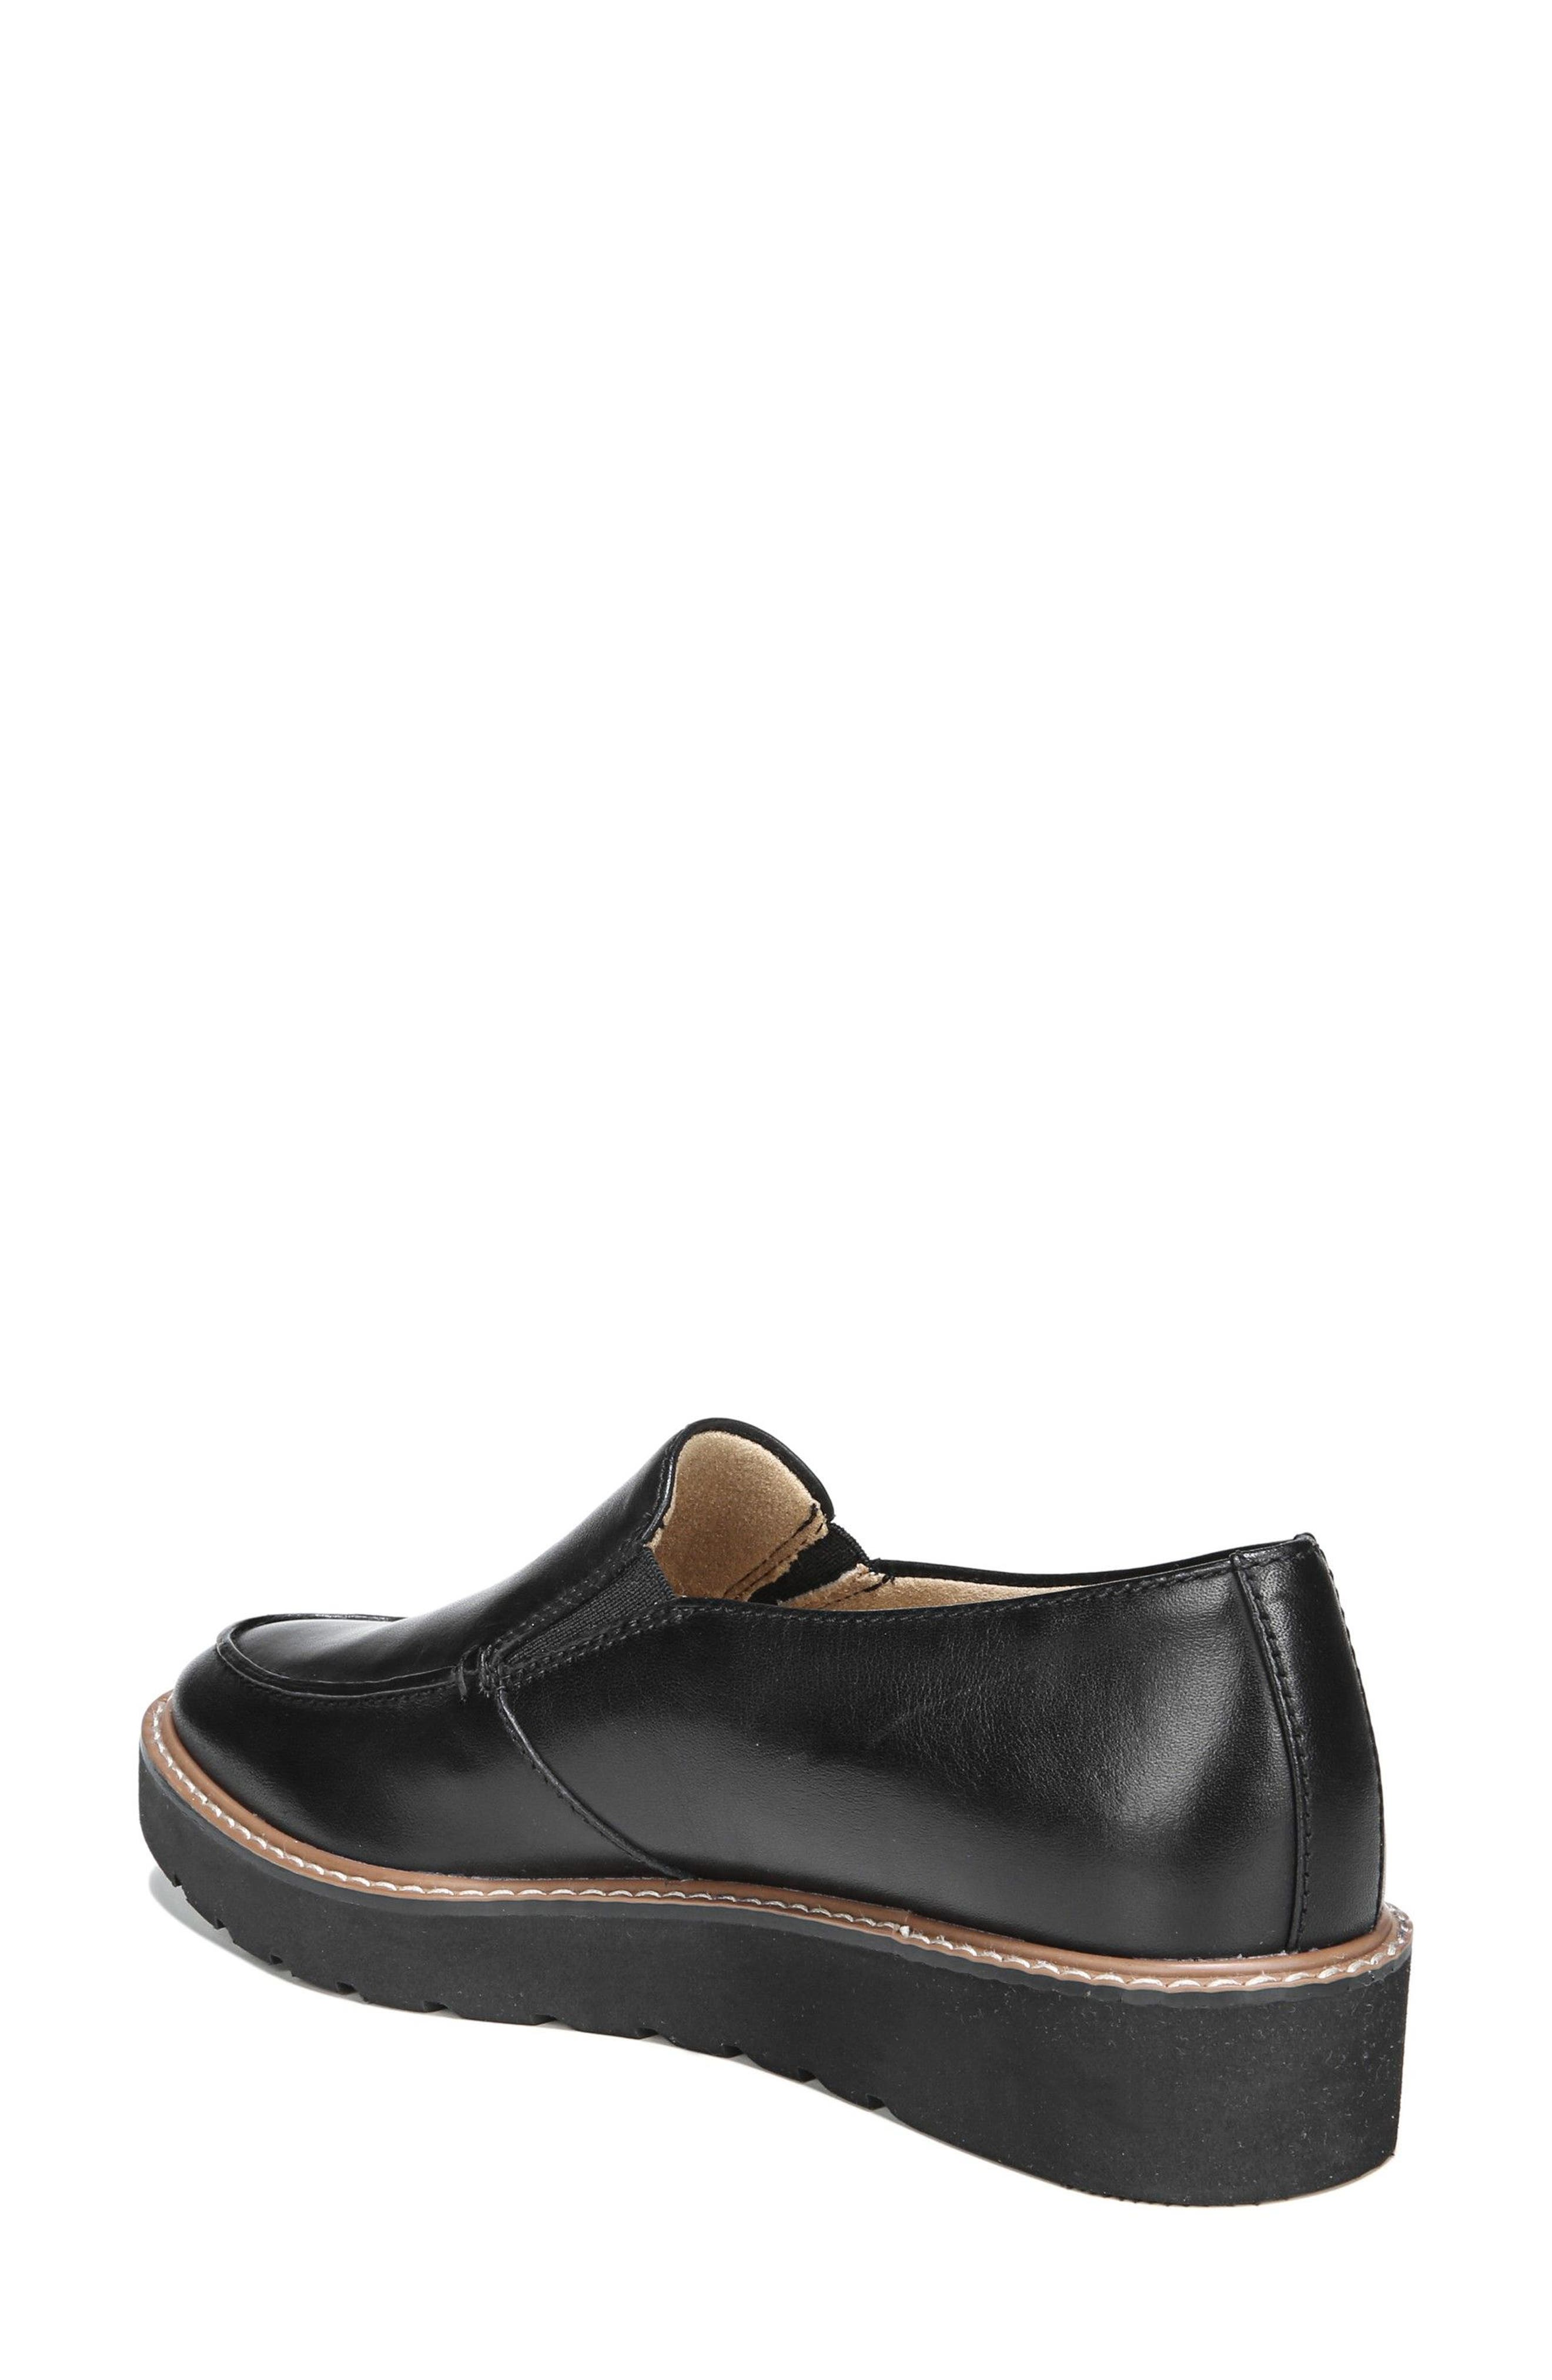 Alternate Image 2  - Naturalizer Aibileen Loafer (Women)